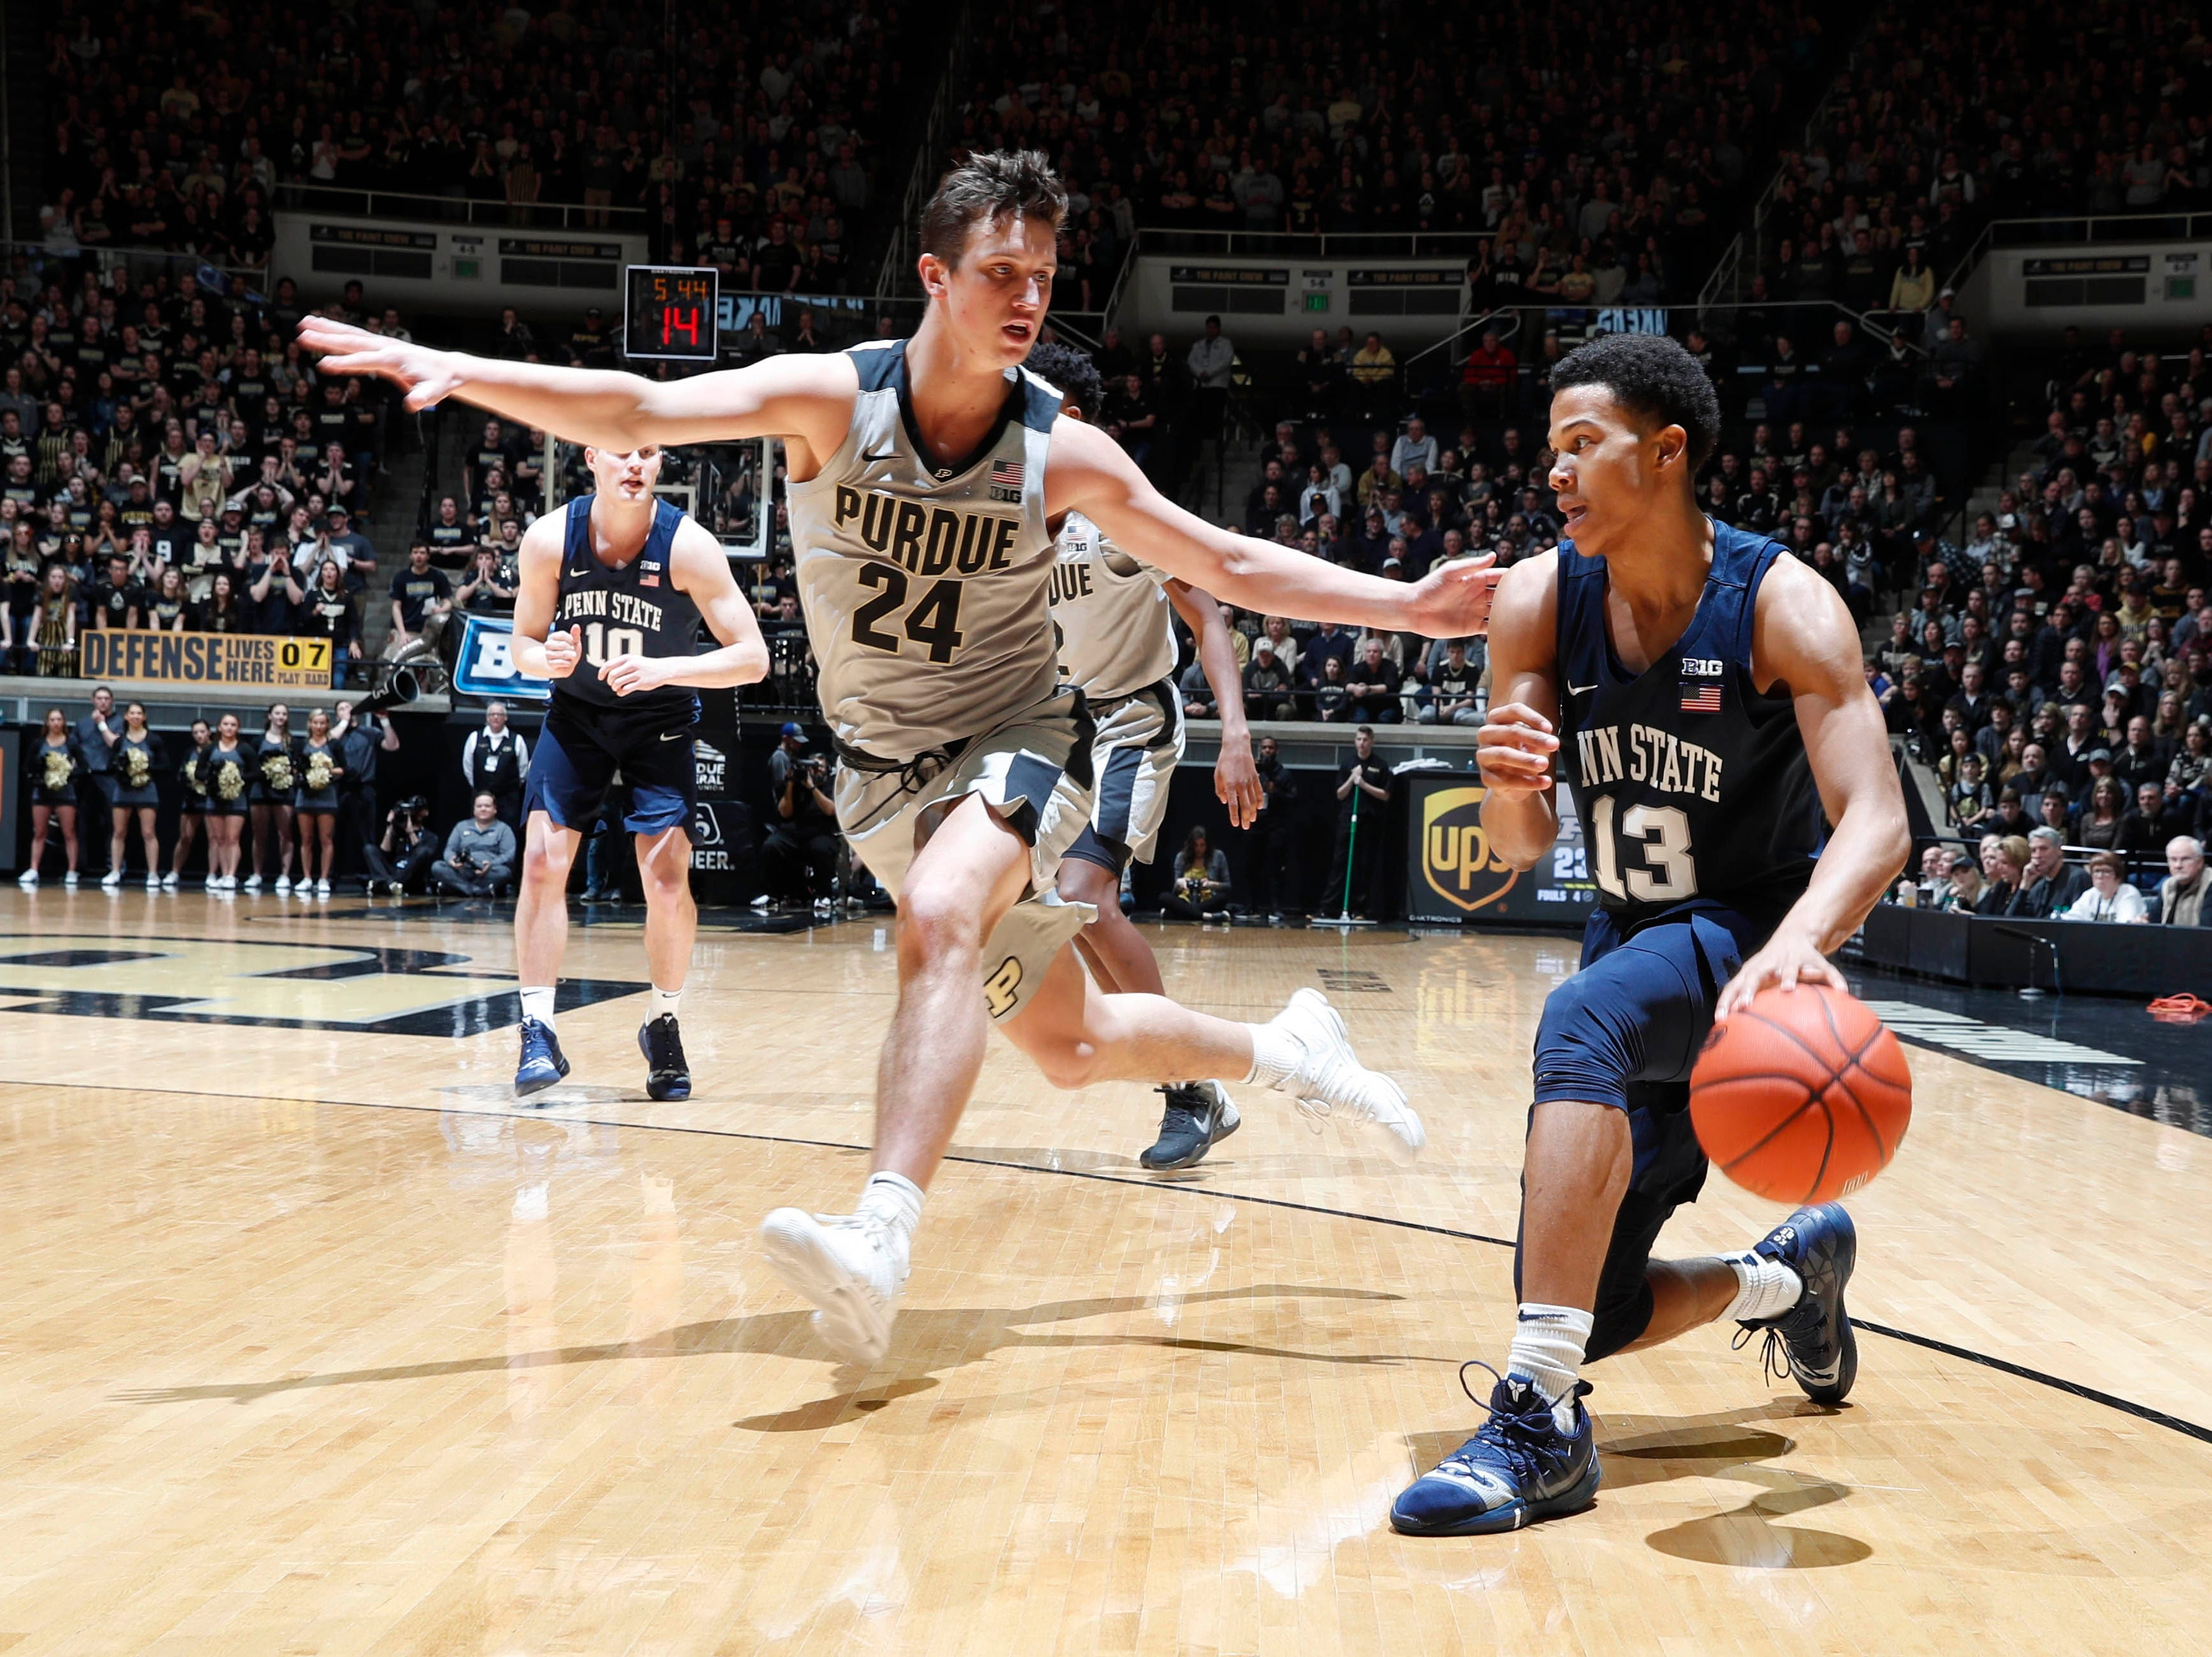 Penn State Nittany Lions guard Rasir Bolton (13) drives to the basket against Purdue Boilermakers forward Grady Eifert (24) during the first half at Mackey Arena.